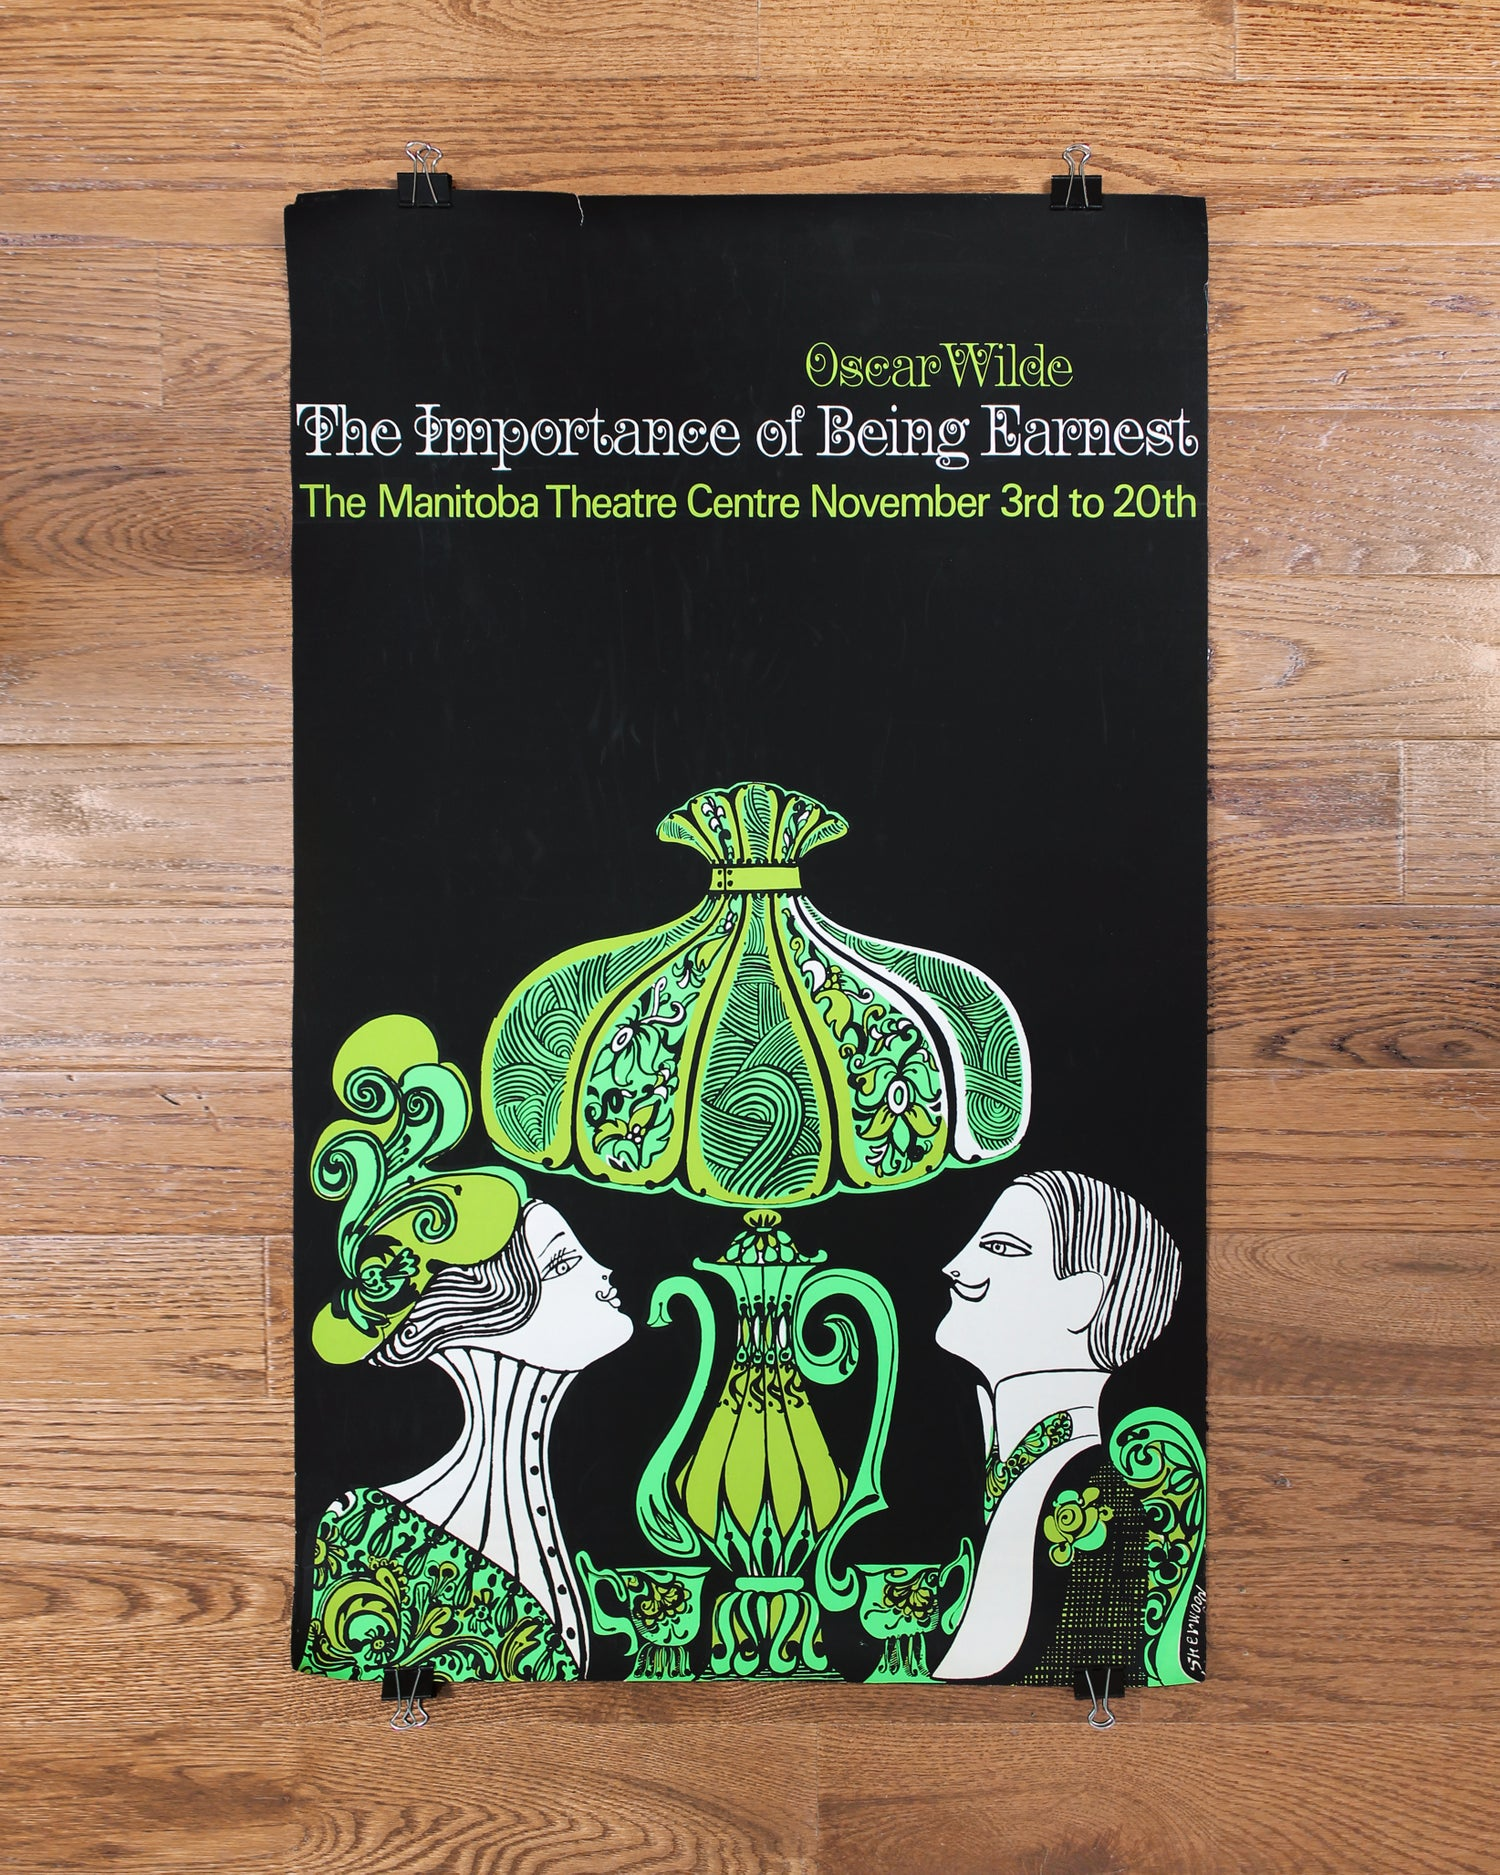 Original Vintage Poster Oscar Wilde The Importance of Being Earnest Play ca. 1965